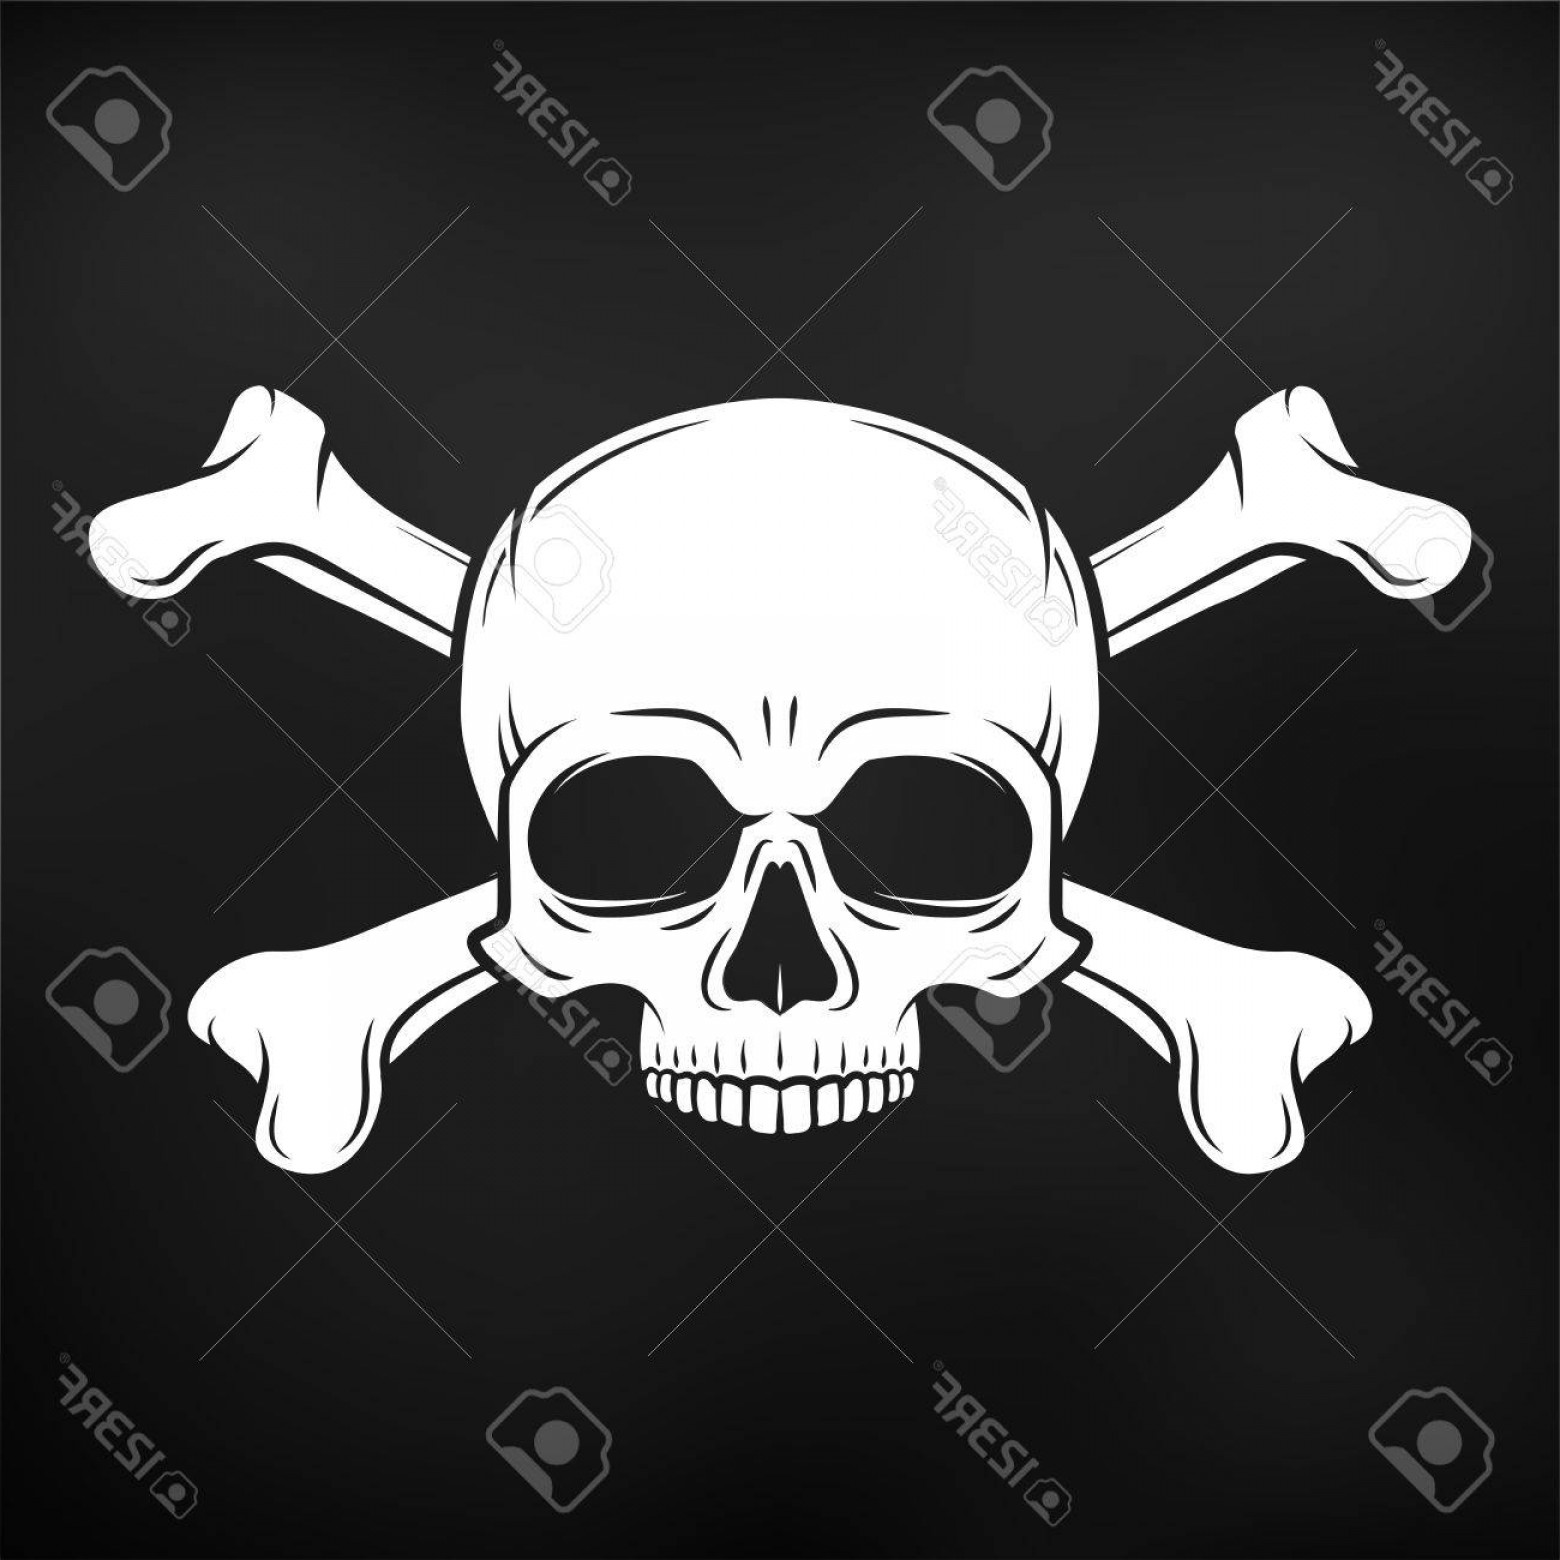 Skull Vector T-shirt Illustration: Photostock Vector Human Evil Skull Vector Jolly Roger With Crossbones Logo Template Death T Shirt Design Pirate Insign